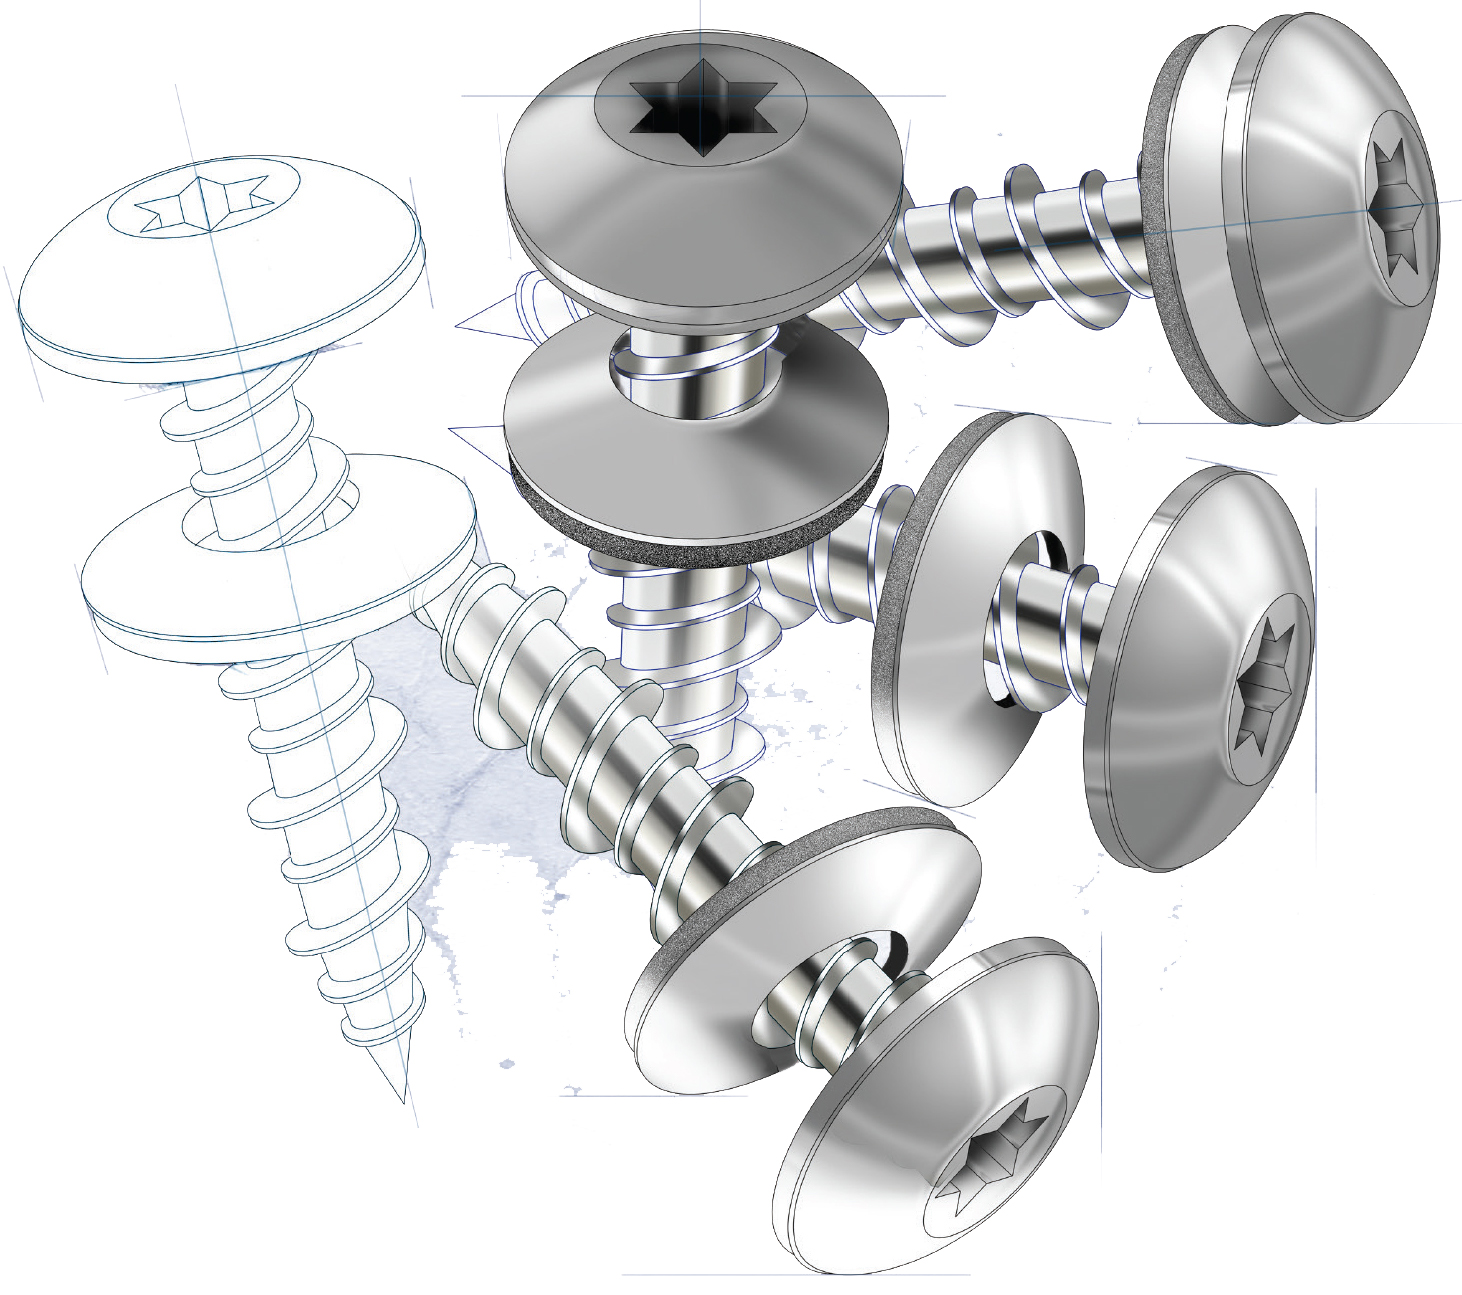 Screws are our standard fasteners, not nails. Building Stronger Buildings